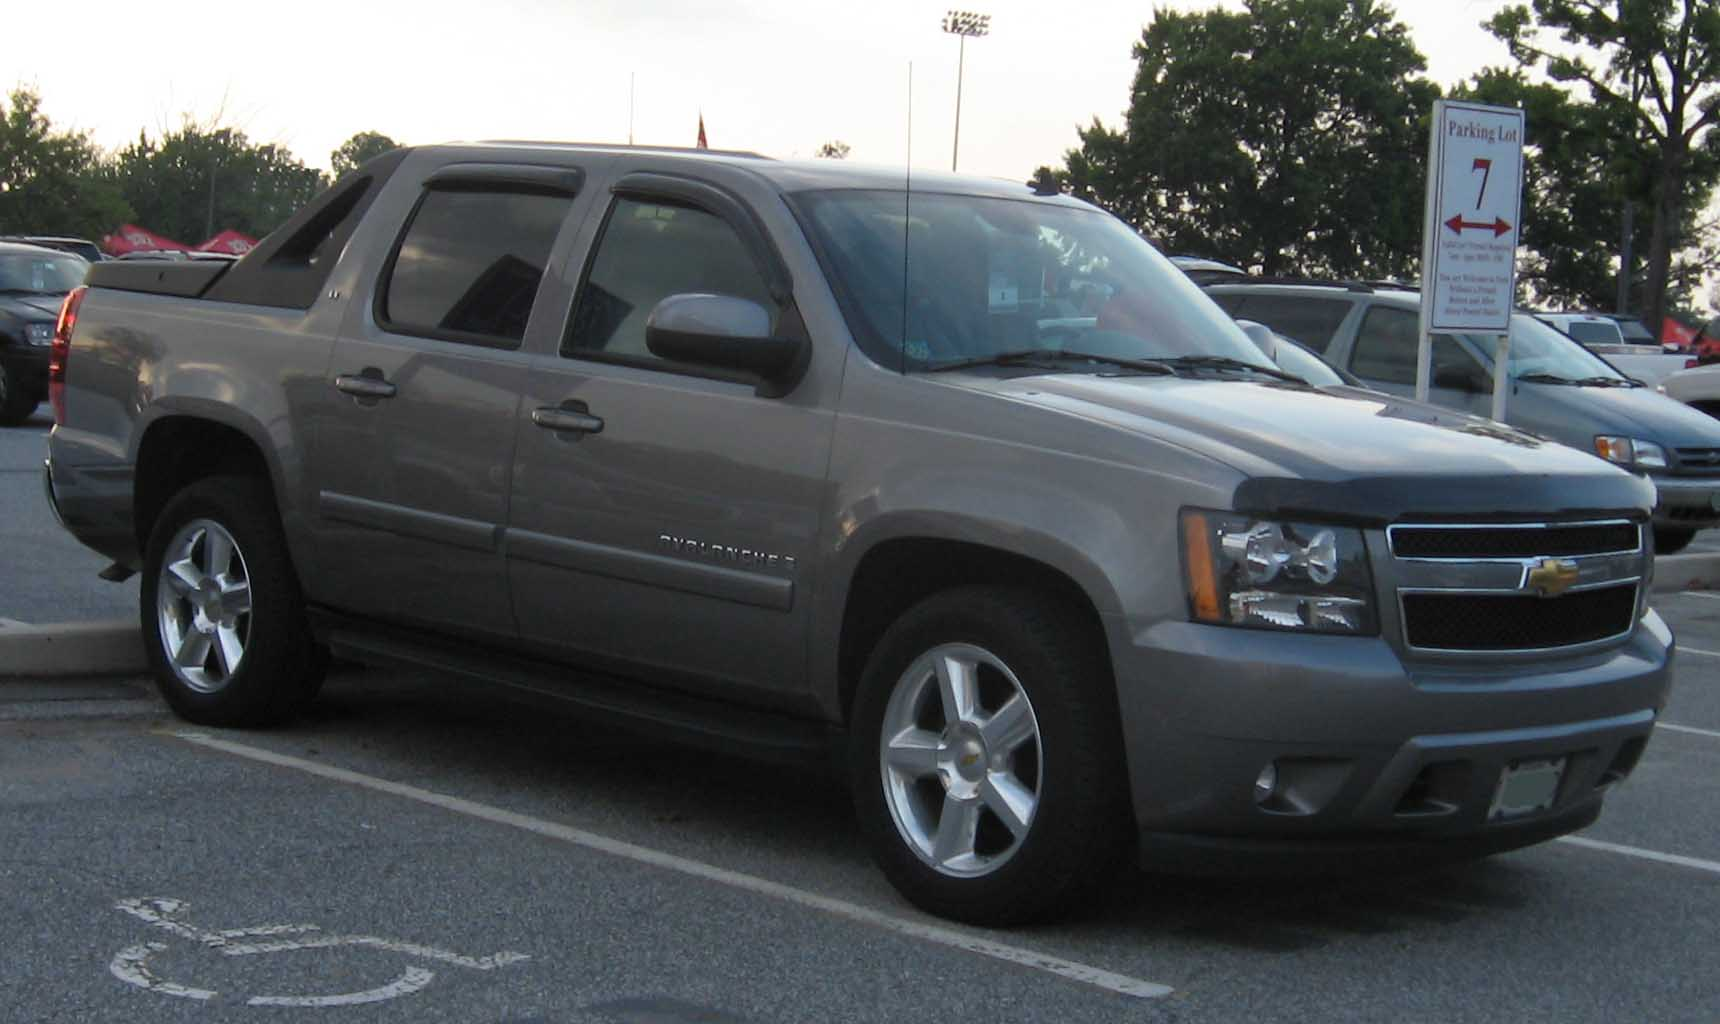 Chevrolet Avalanche Wikipedia >> File:2nd-Chevrolet-Avalanche.jpg - Wikipedia